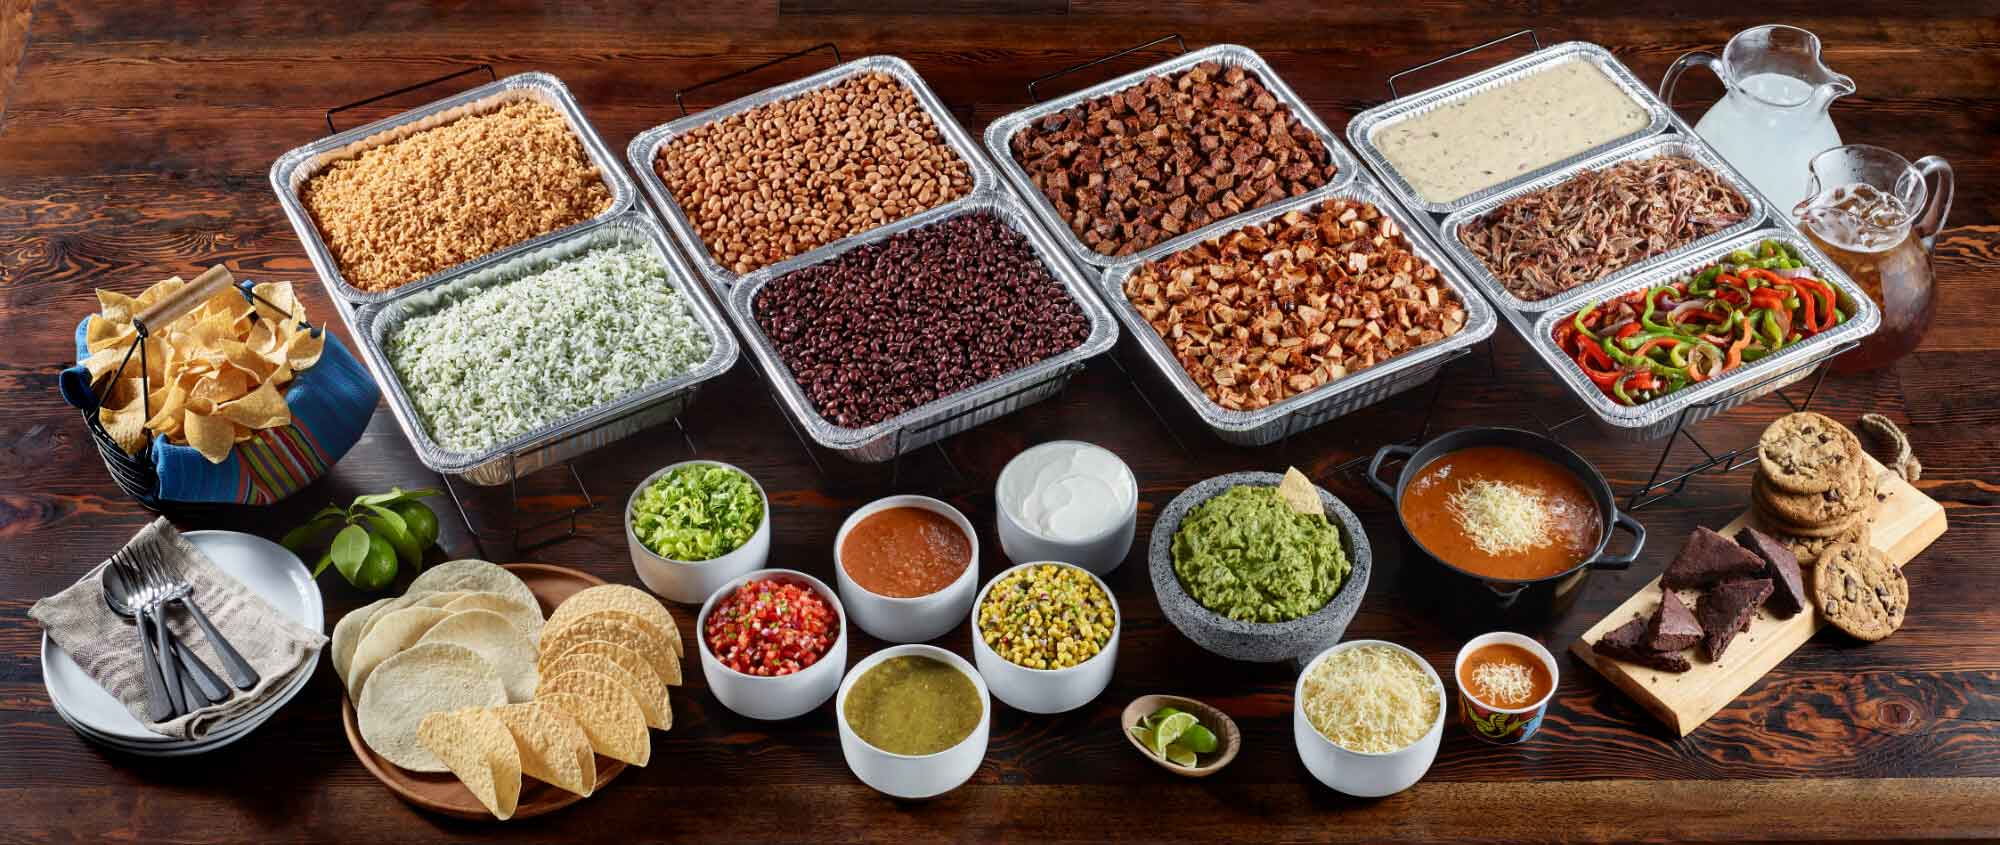 Qdoba Mexican Food Catering in Cincinnati, OH